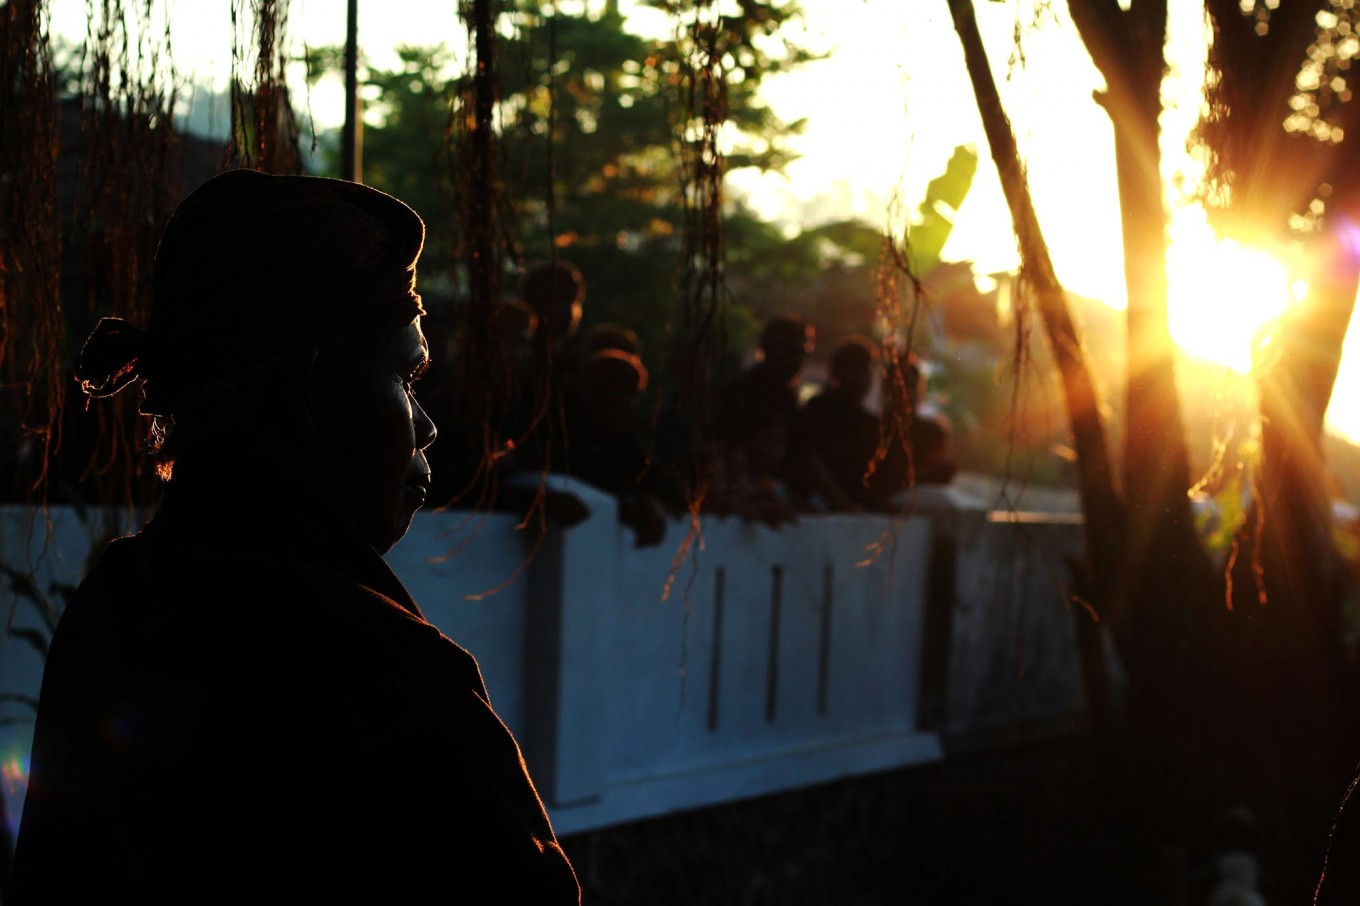 Early riser: Men of the Bonokeling tribal community get ready for the Day of Sacrifice early in the morning. JP/Kukuh Sukmana Hasan Surya